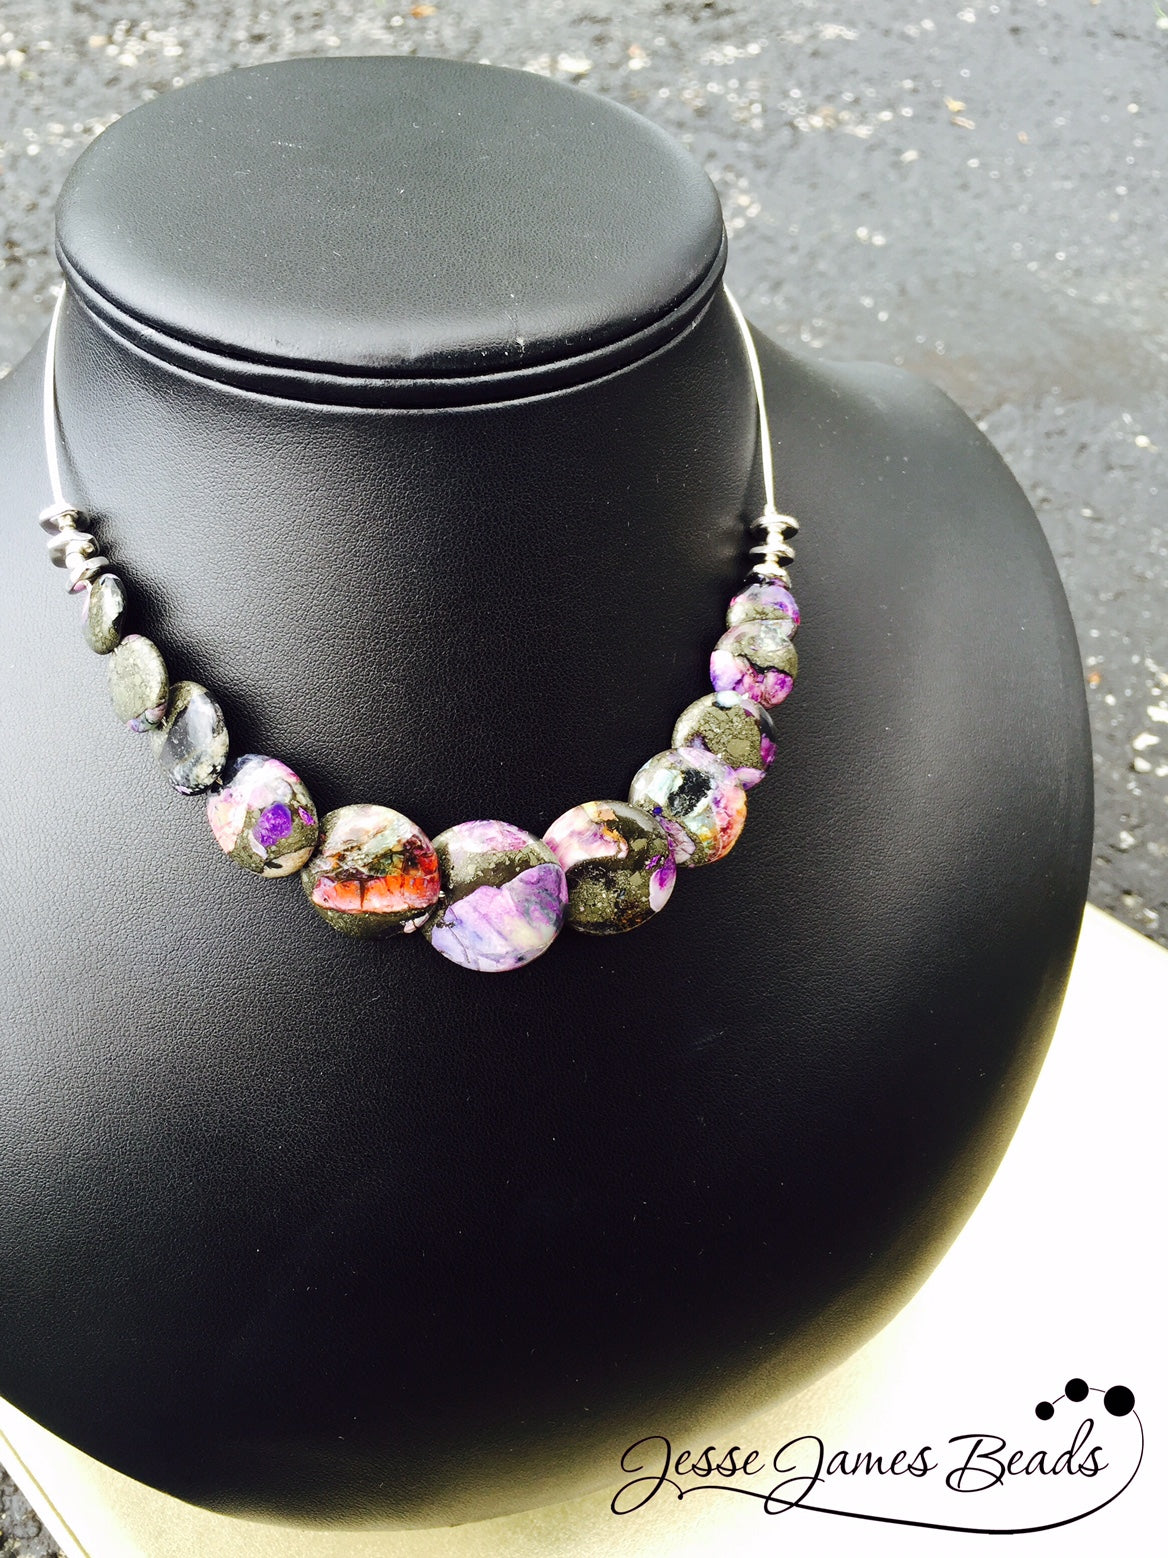 Purple Rain Necklace Project from Candie Cooper and Jesse James Beads